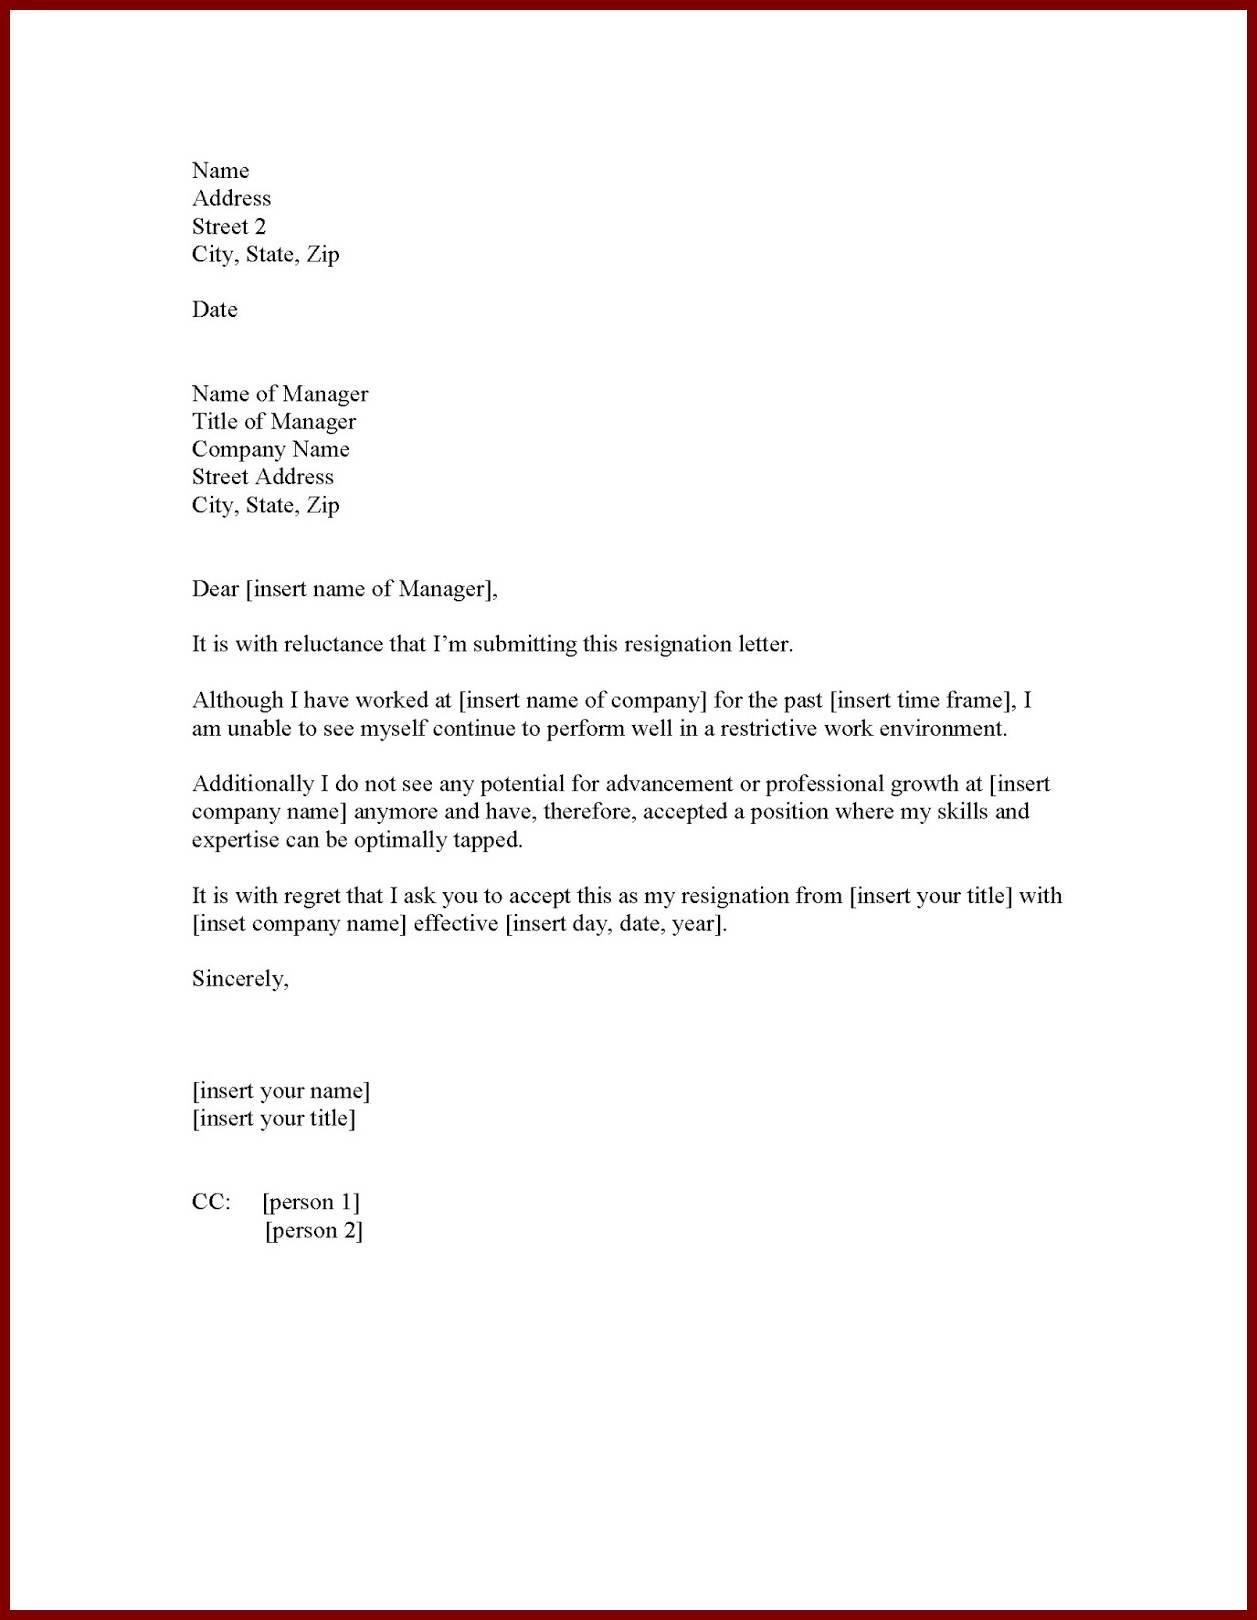 Resignation Letter : One Month Notice Period Resignation Letter